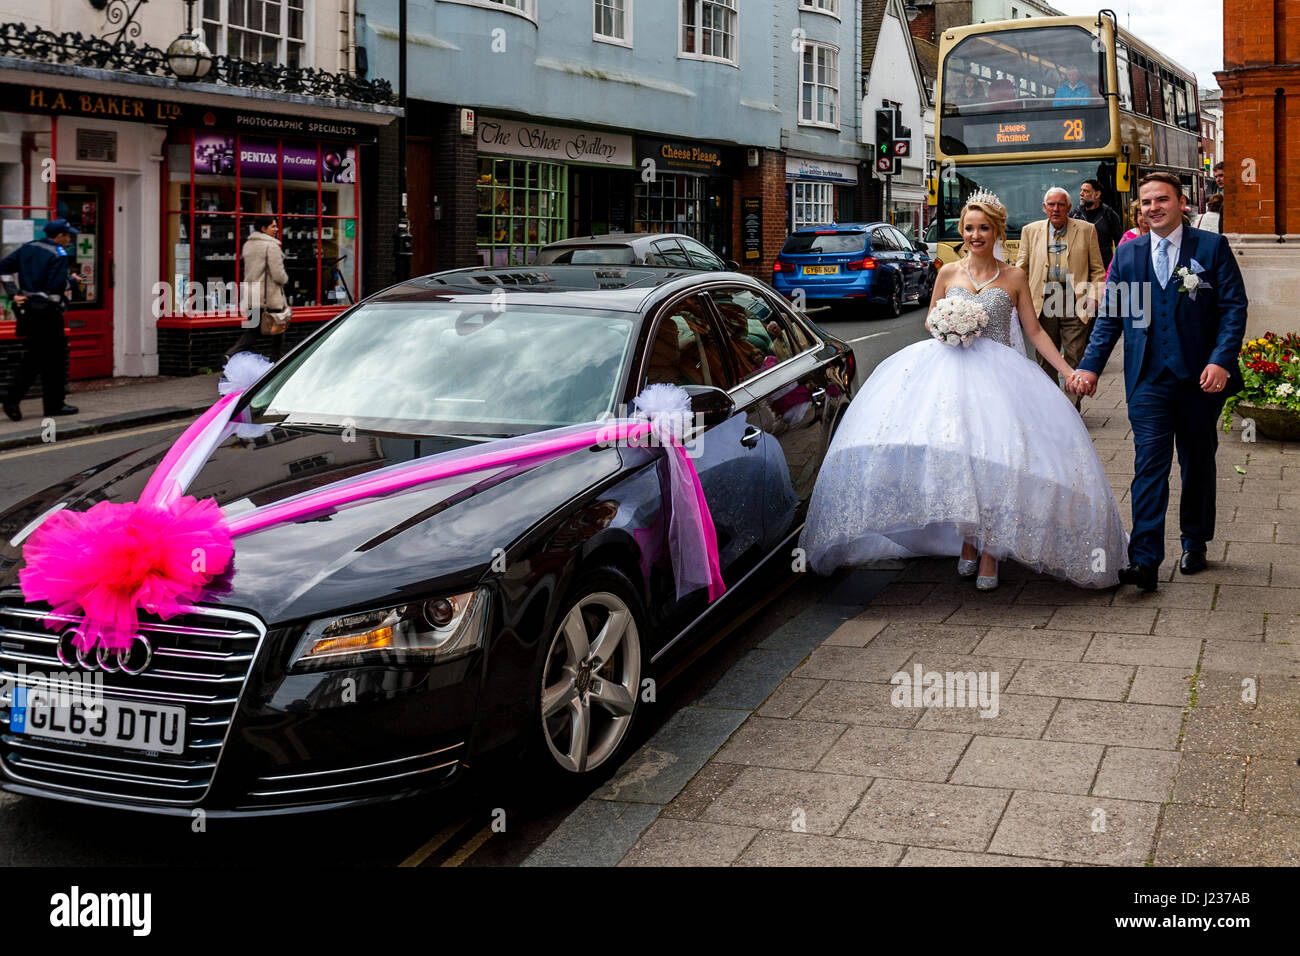 A Newly Married Young Couple Get Into Their Car, Lewes, Sussex, UK - Stock Image